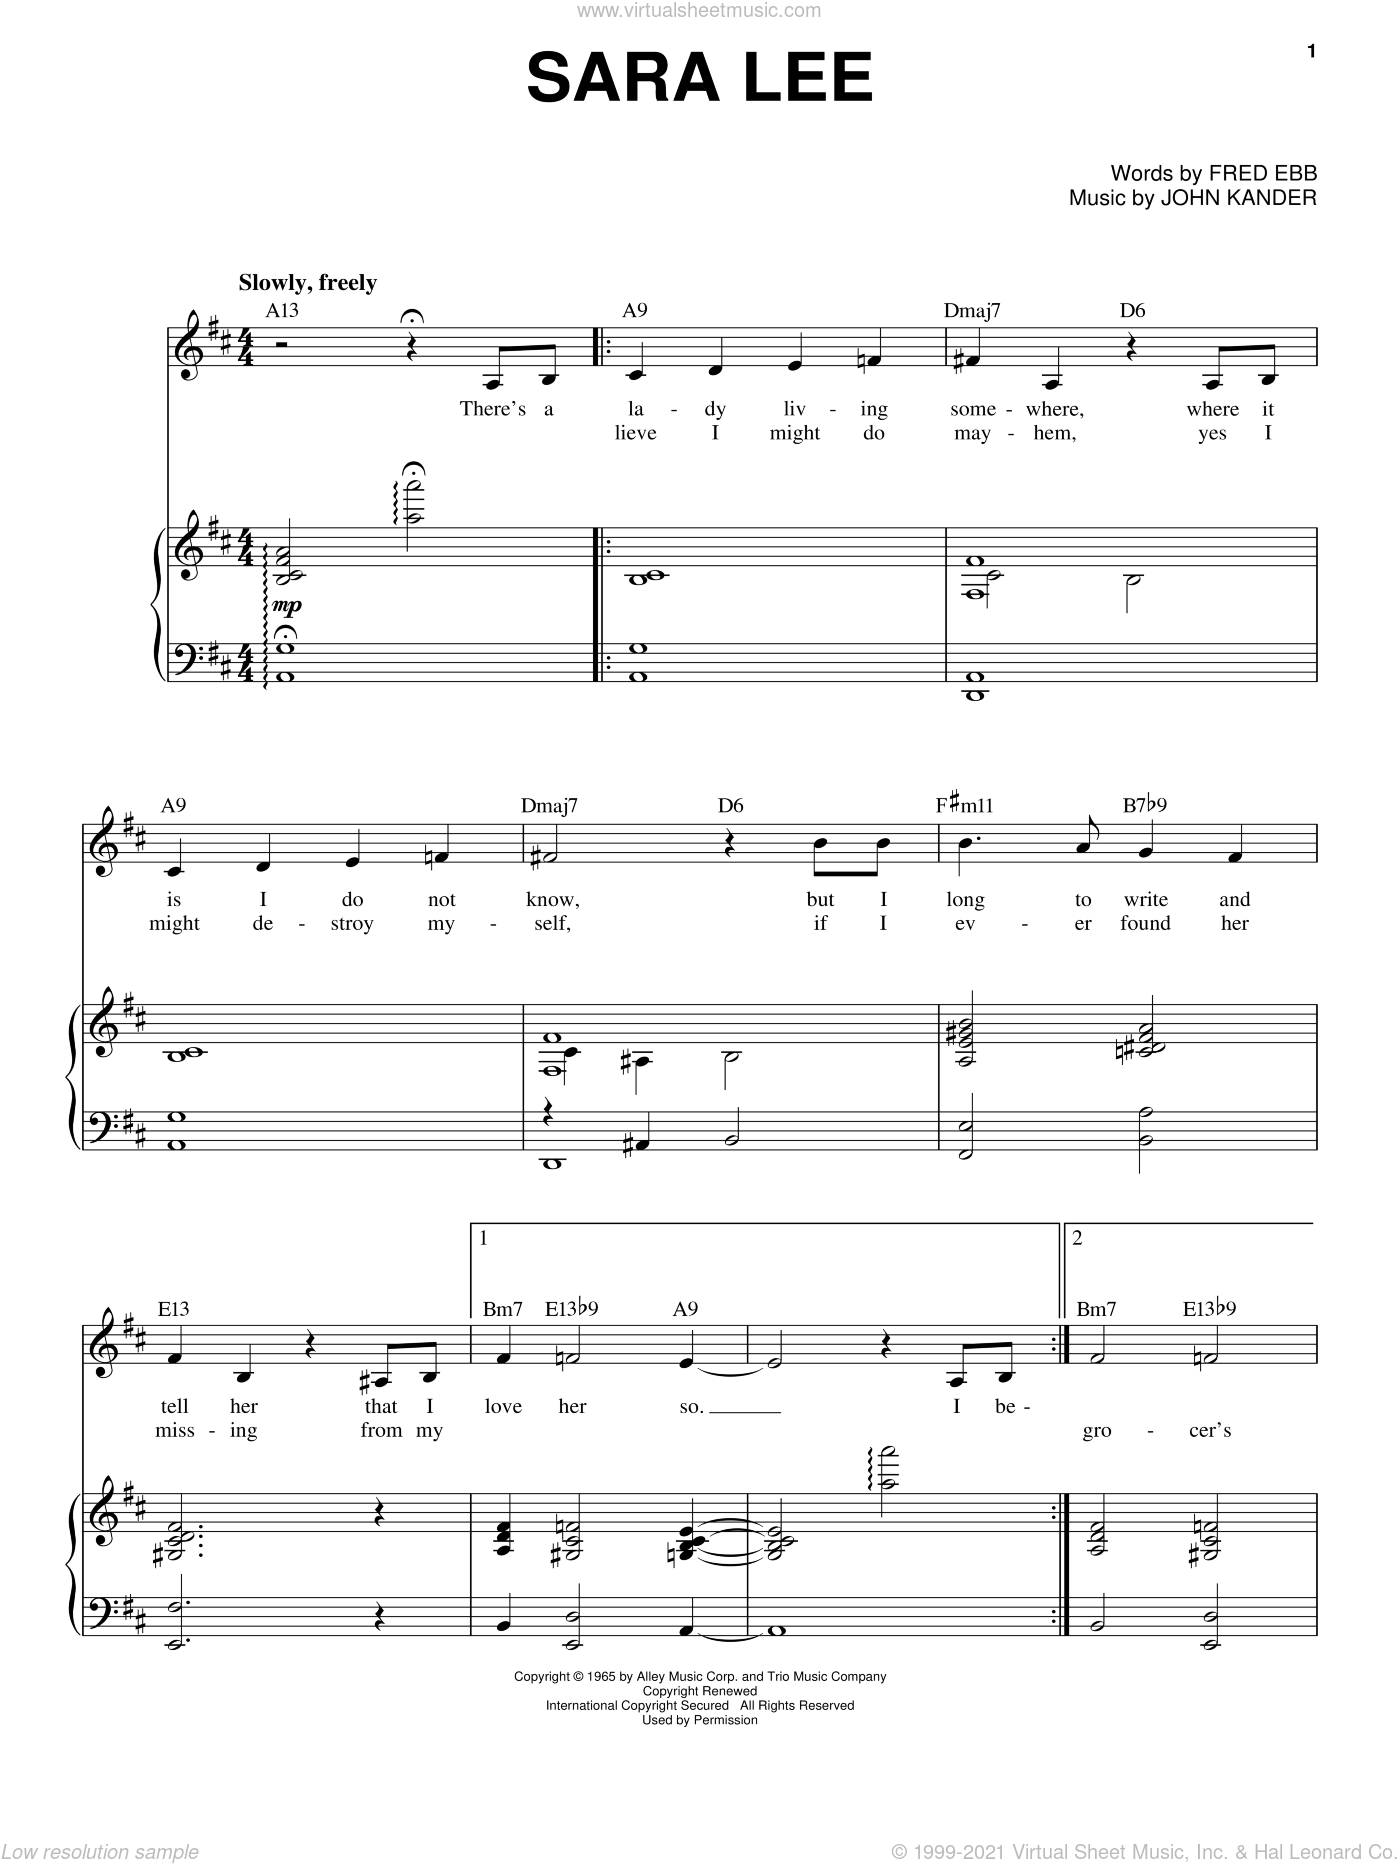 Sara Lee sheet music for voice and piano by John Kander